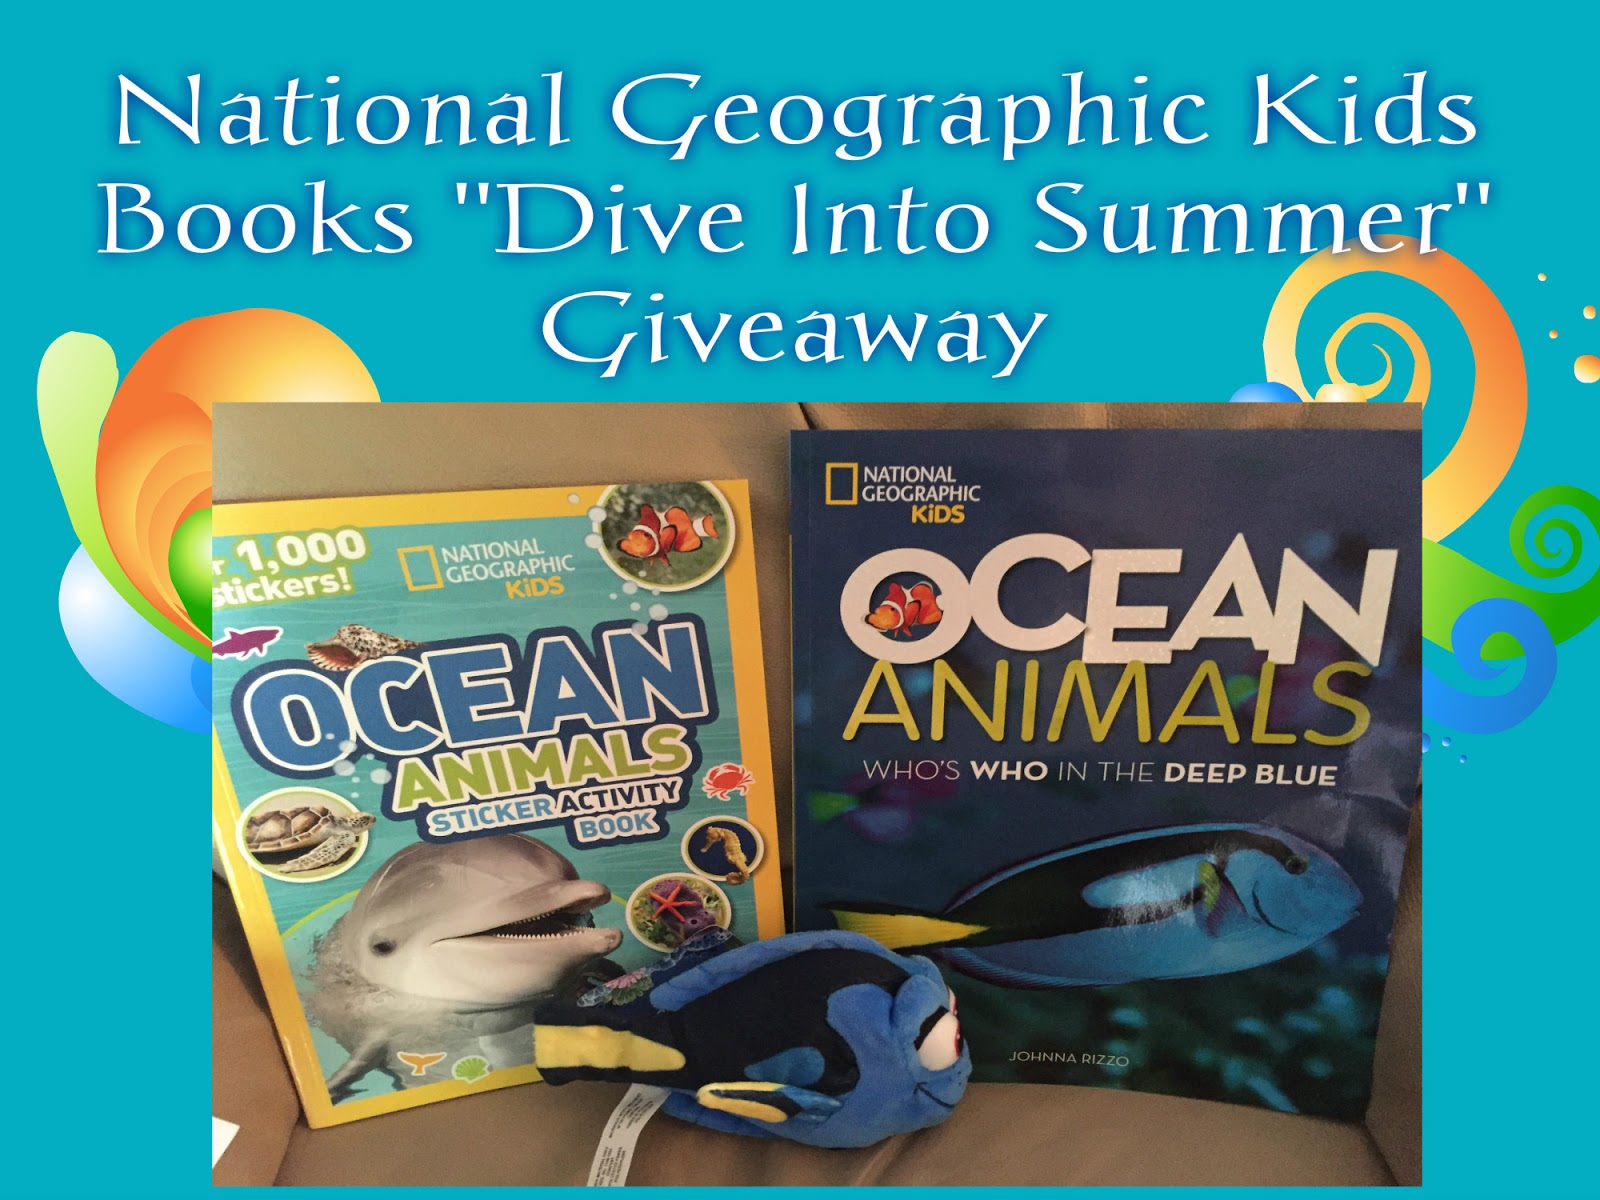 Maria's Space: National Geographic Kids Books